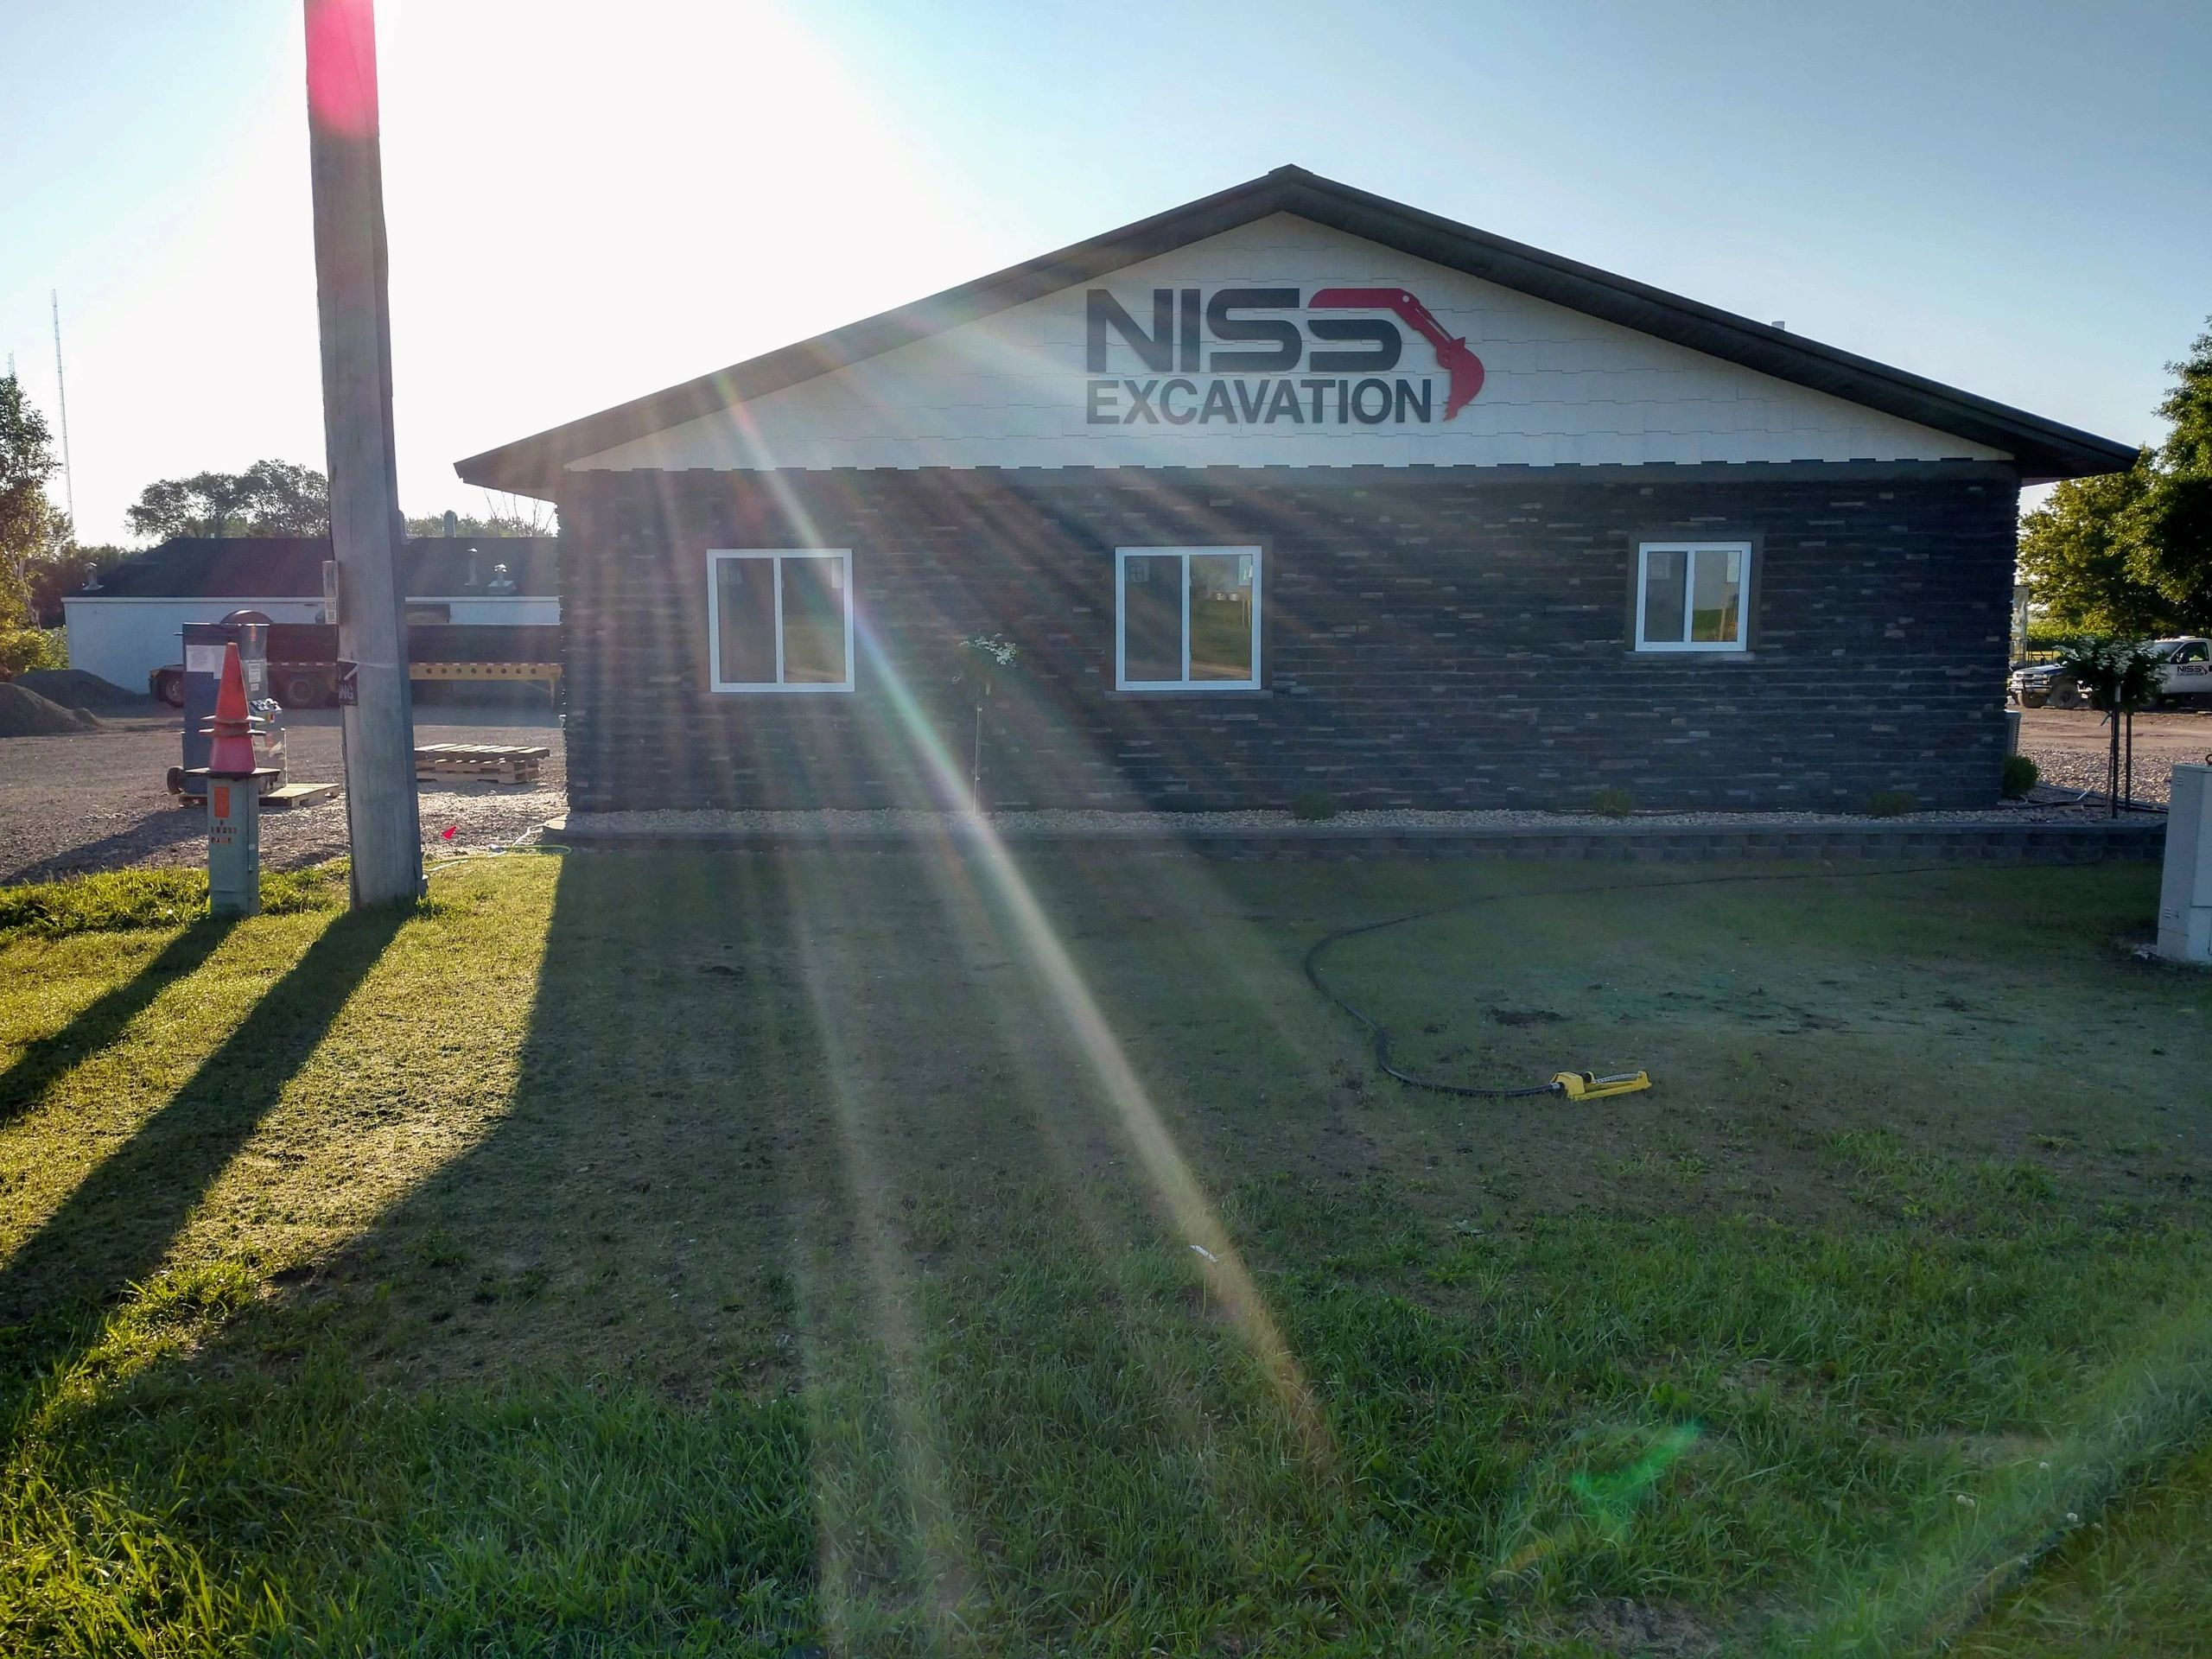 NISS New Office come by and see us at 3609 S Federal Ave. Mason City, Ia